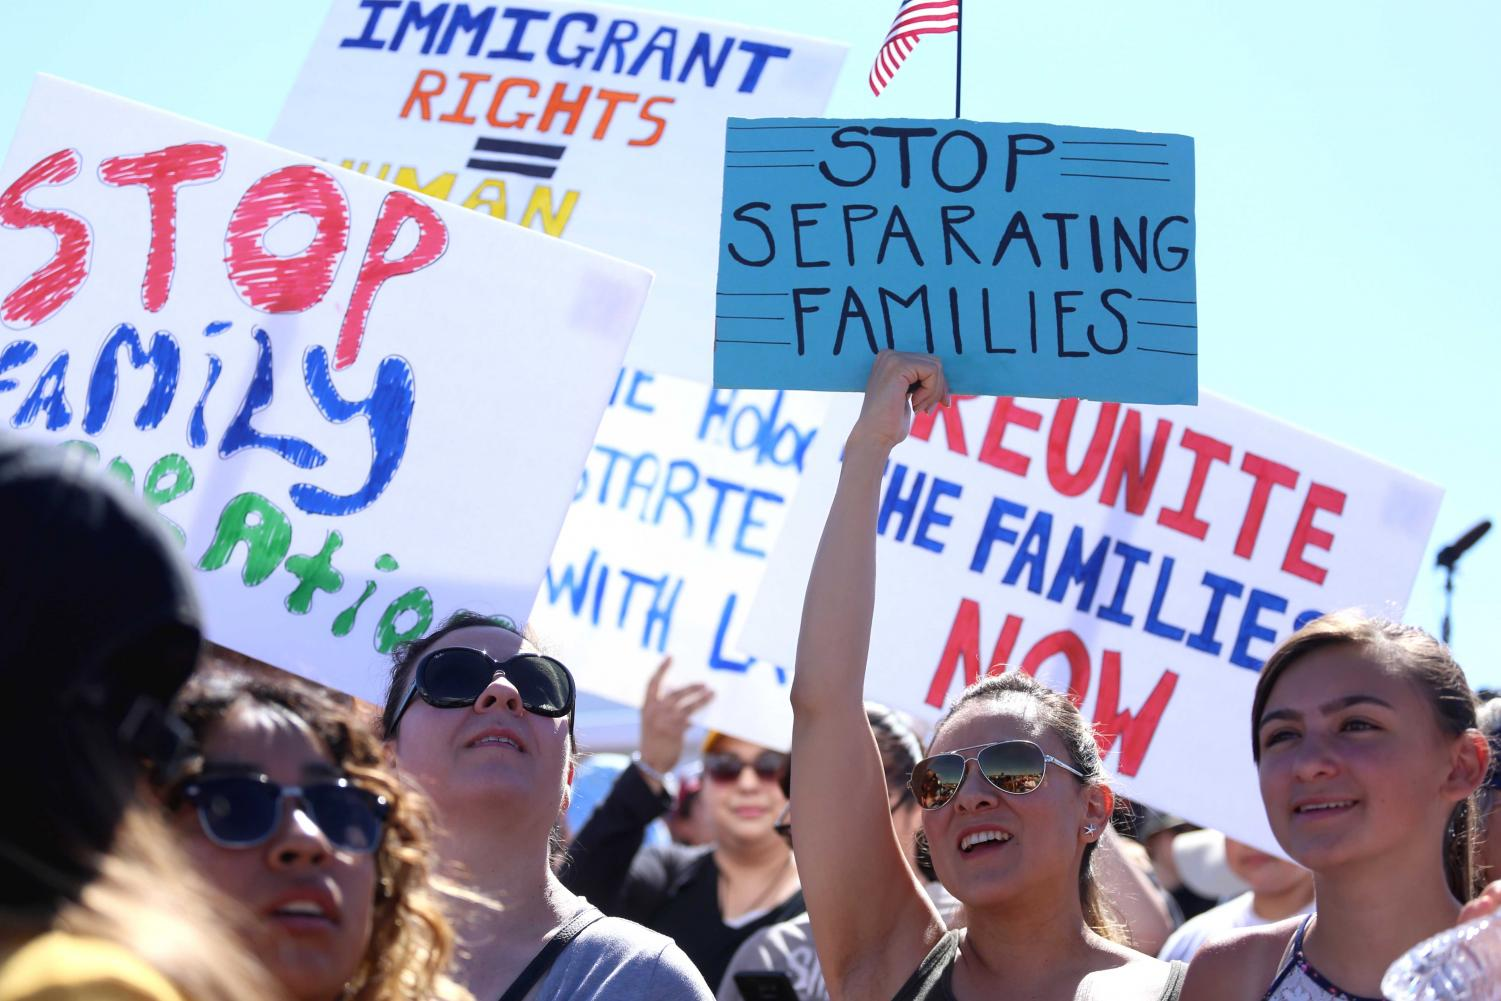 Hundreds march to demand an end to family separation at the